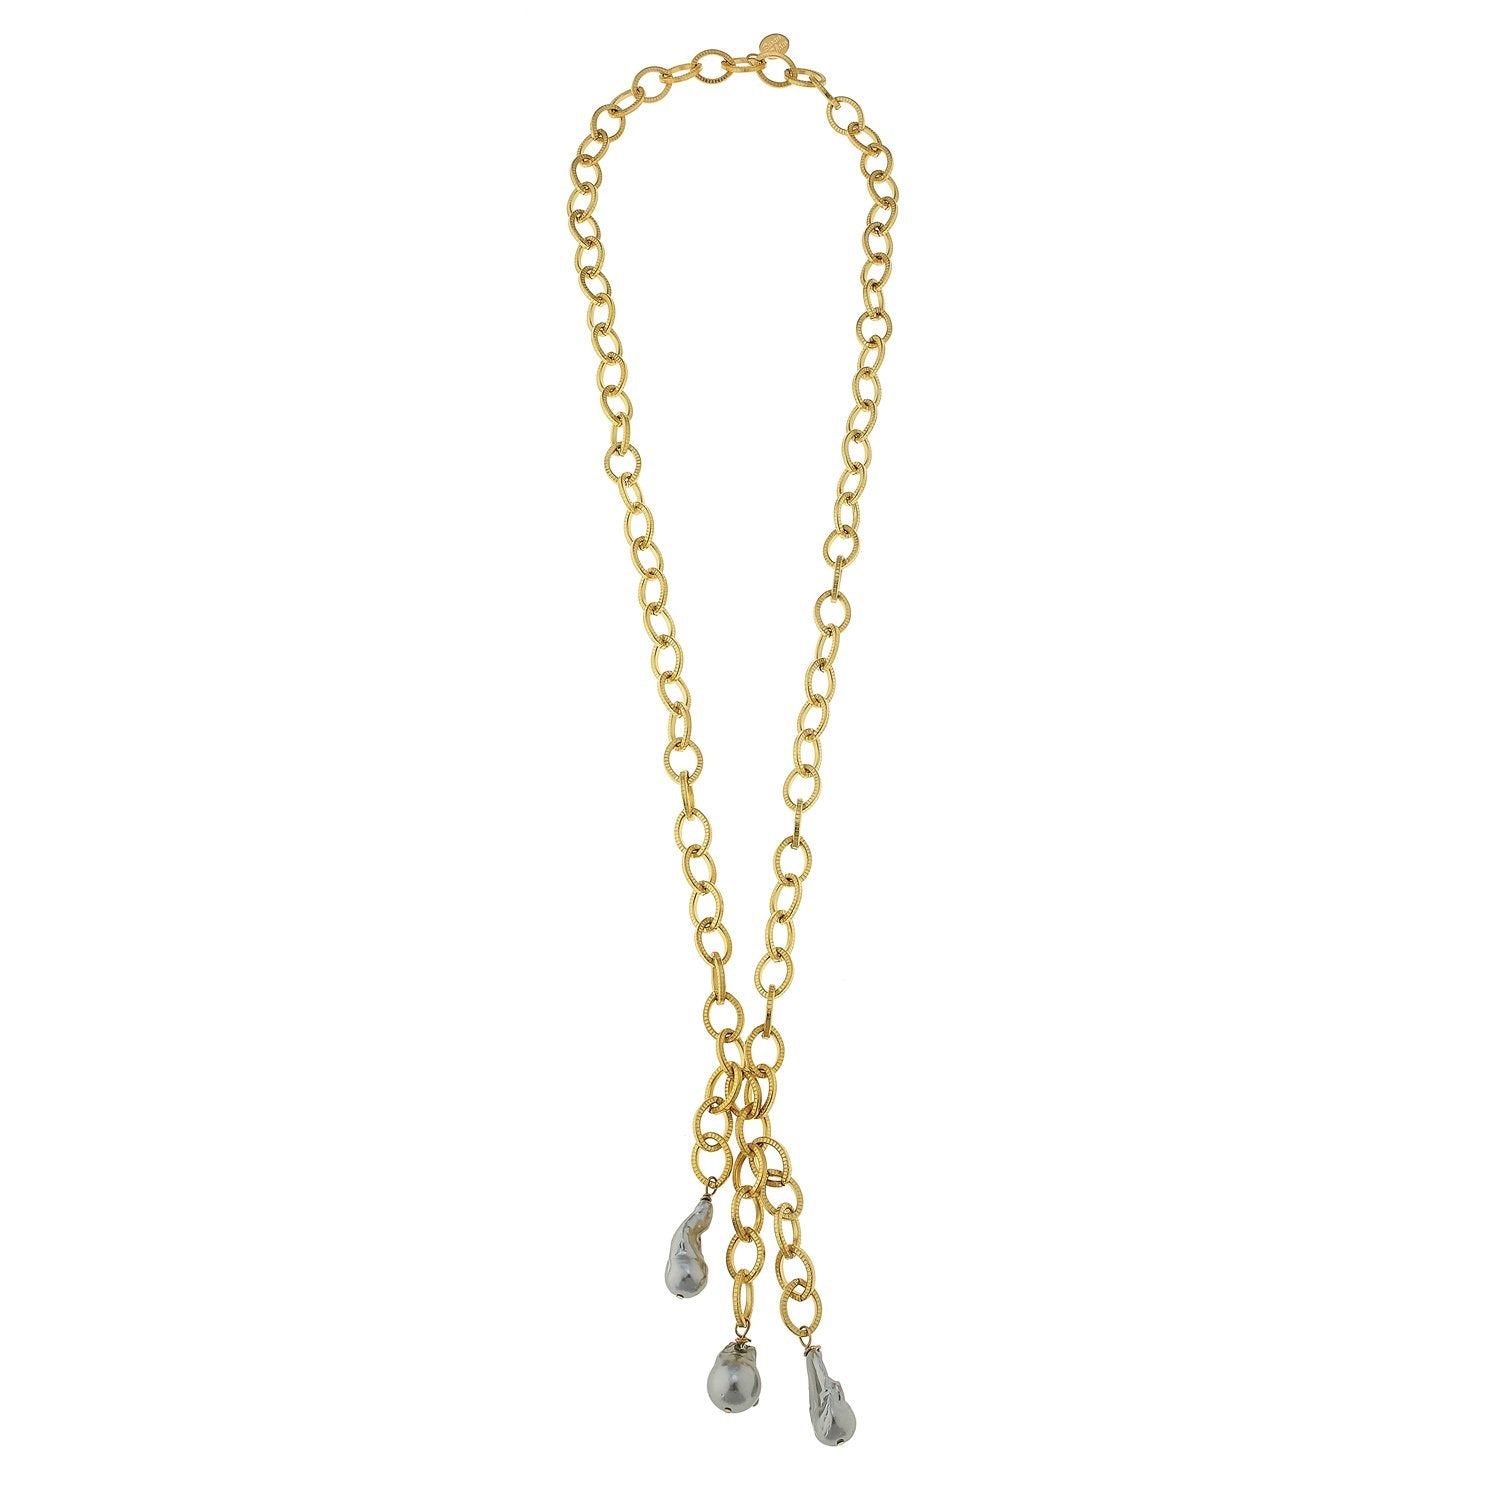 Susan Shaw Gold Textured Loop Chain w/ Genuine Grey Freshwater Baroque Pearl Drops